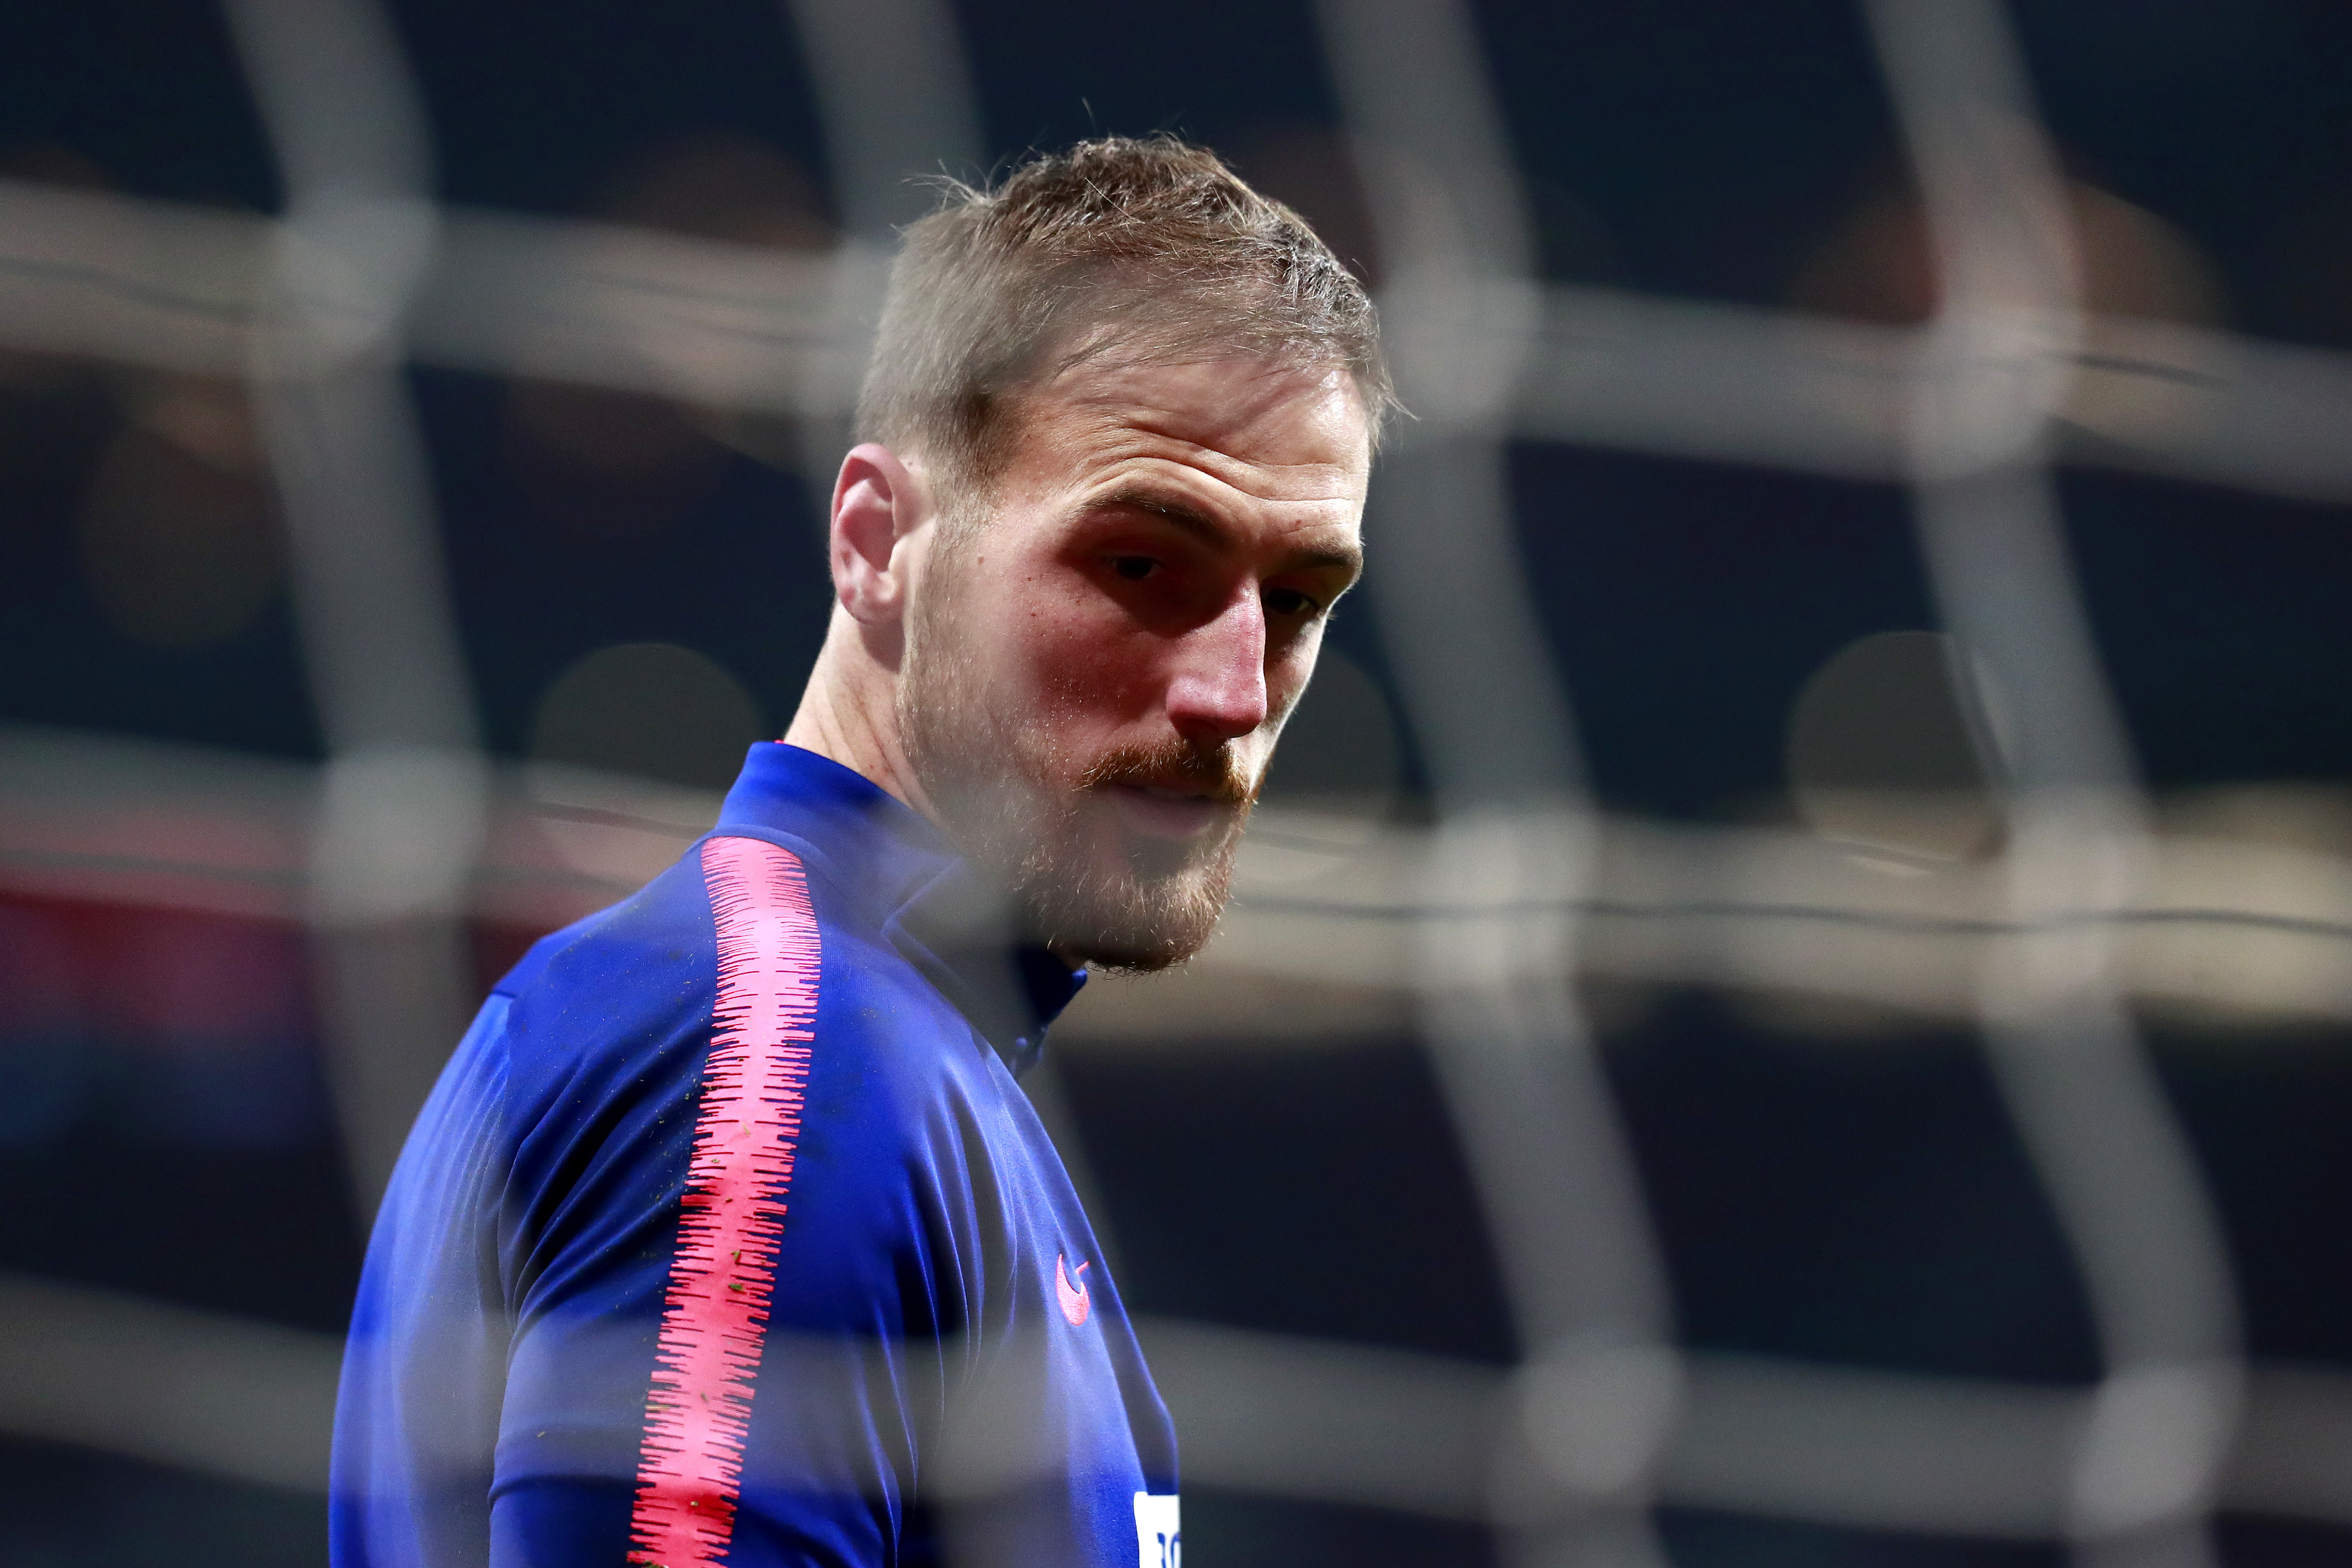 Will Oblak put in another insane shift vs Barcelona? (Photo by Gonzalo Arroyo Moreno/Getty Images)